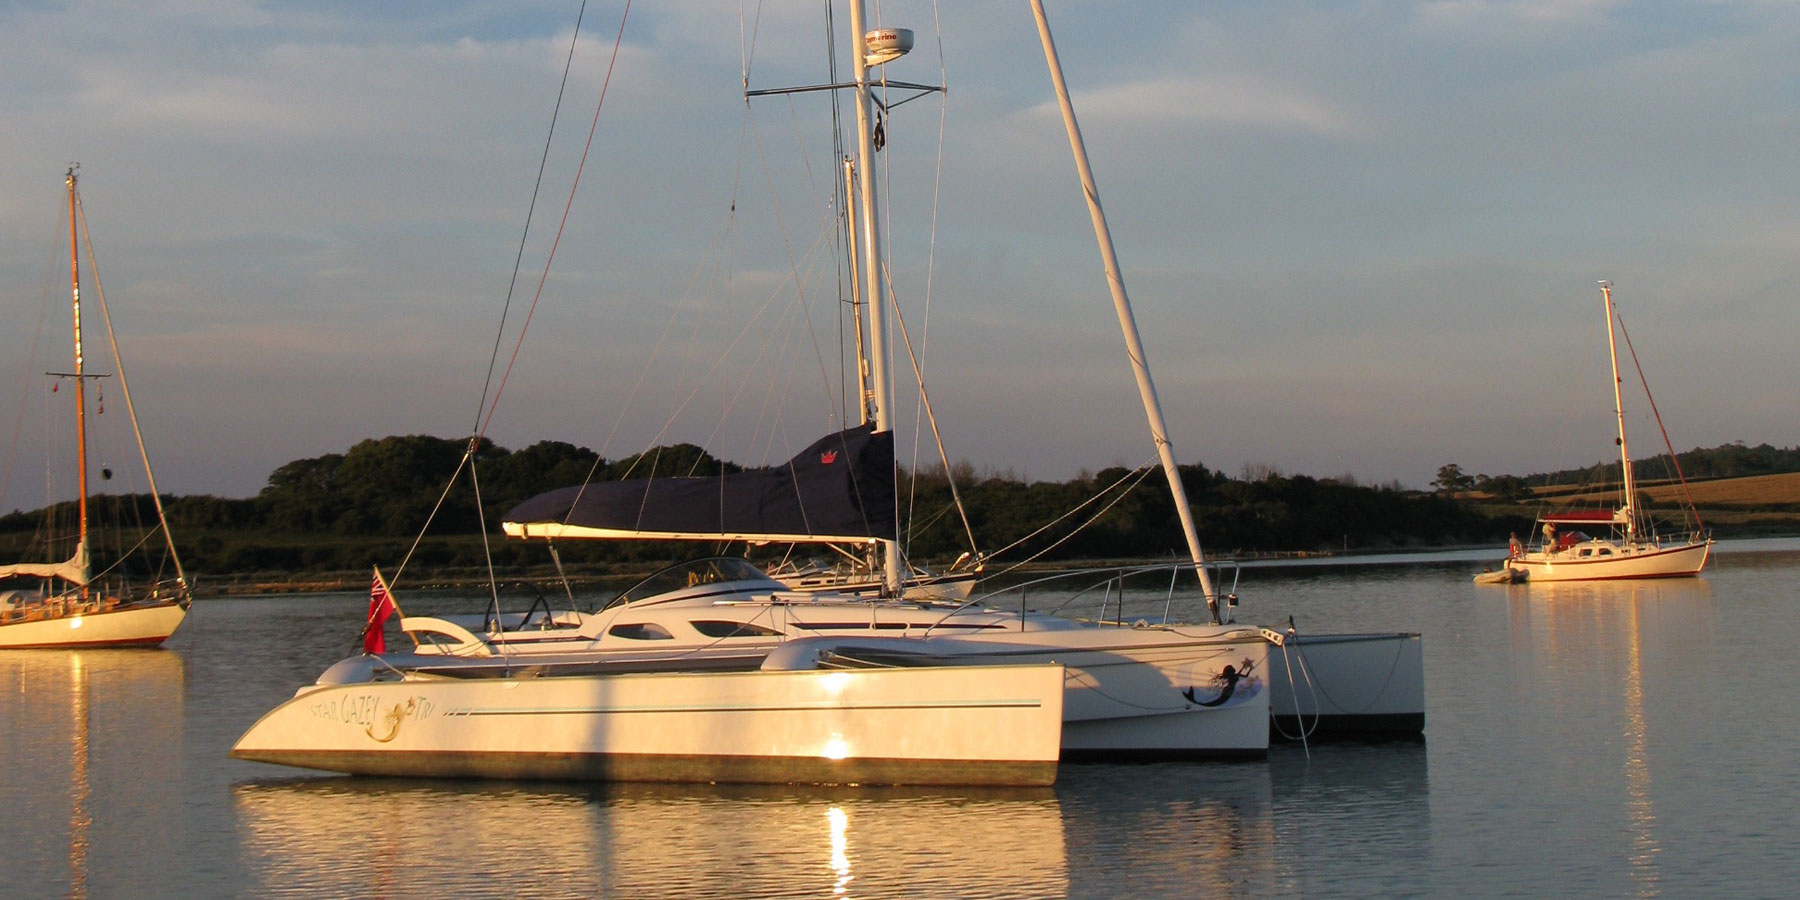 Dragonfly 35 Ultimate trimaran for sale